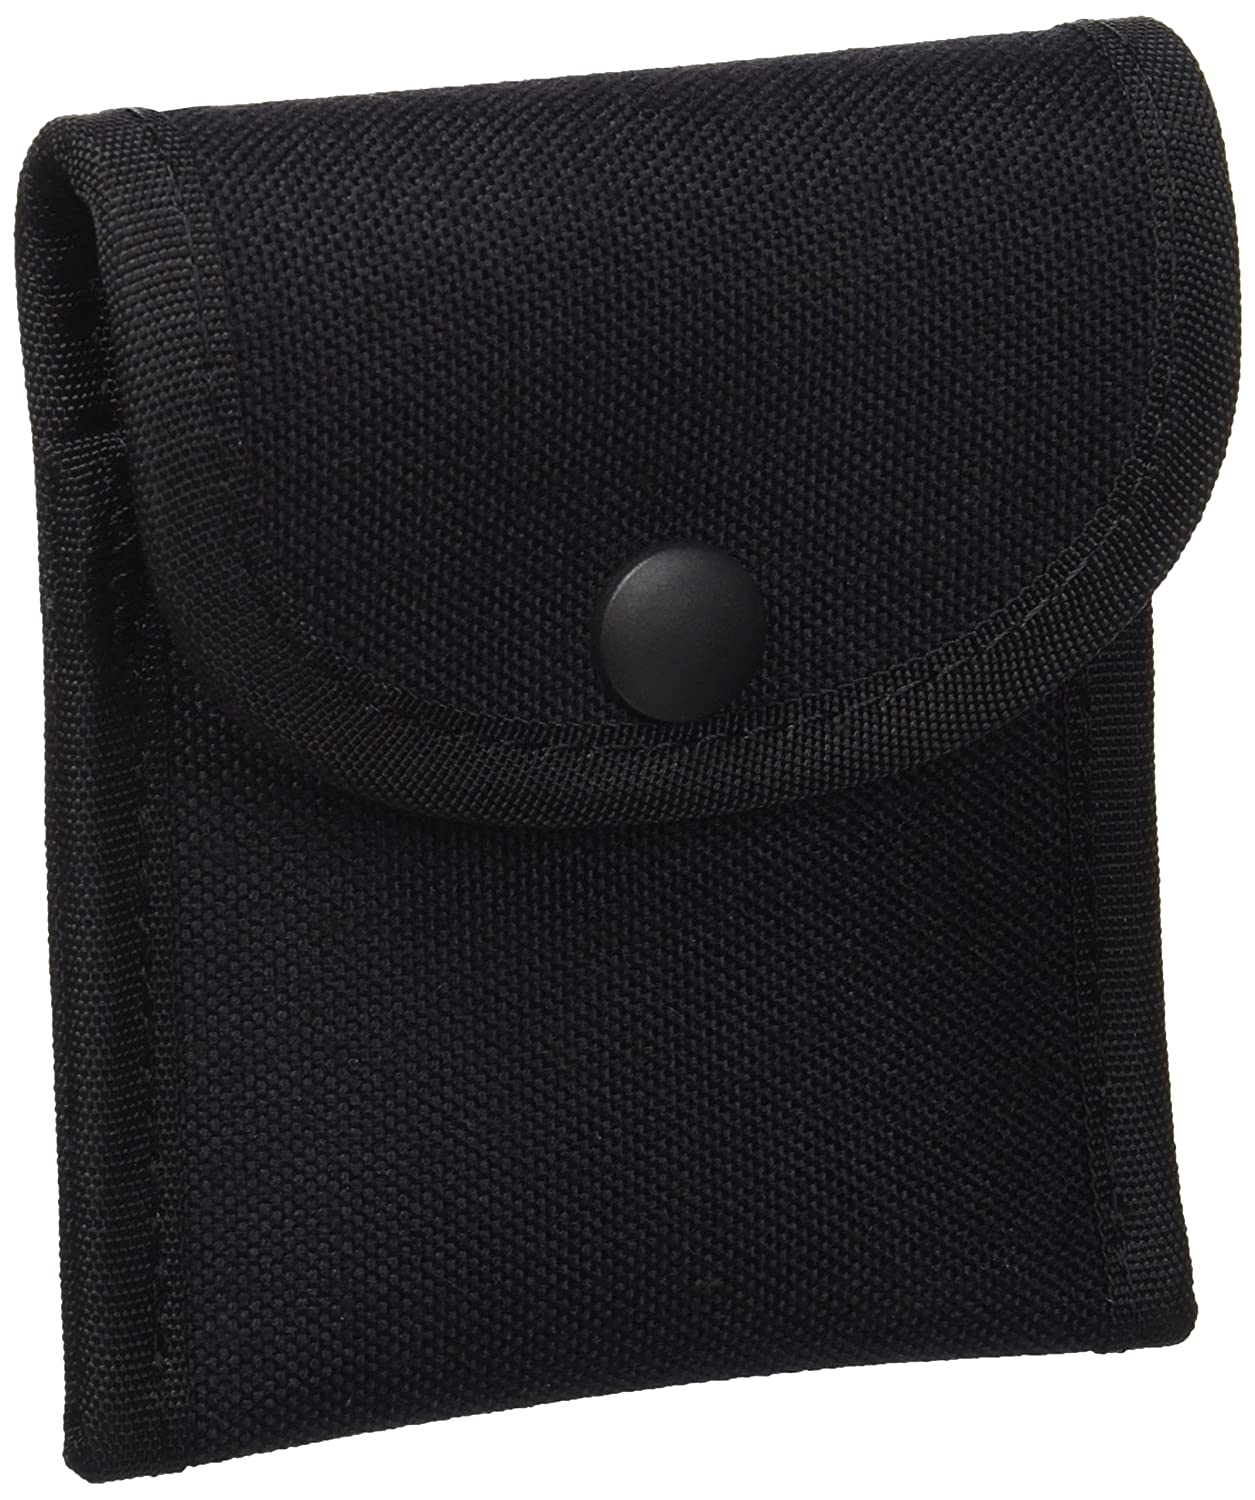 Uncle Mike's Law Enforcement 88871 Kodra Duty Nylon Web Single Snap Close Latex Glove Pouch, Black